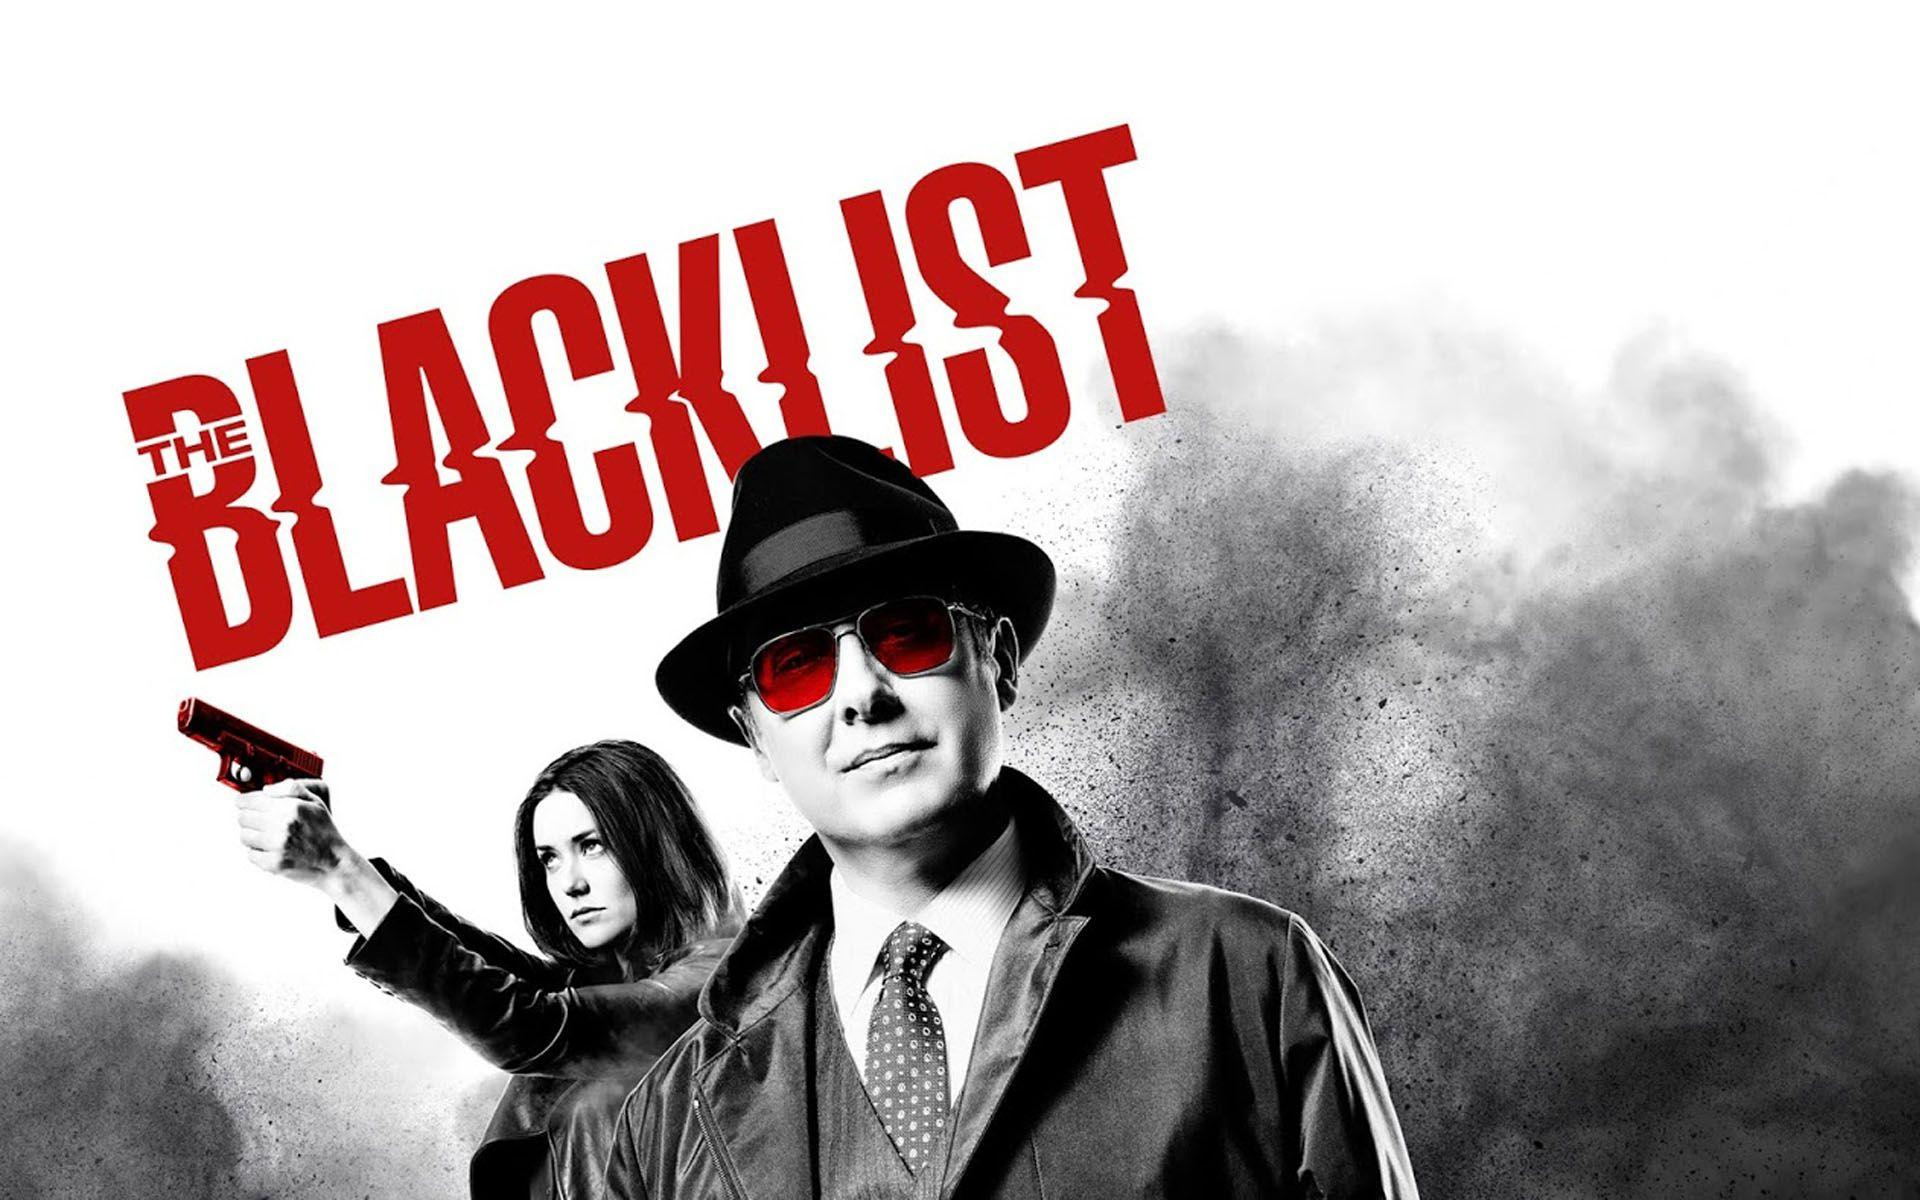 The Blacklist Wallpapers - Wallpaper Cave